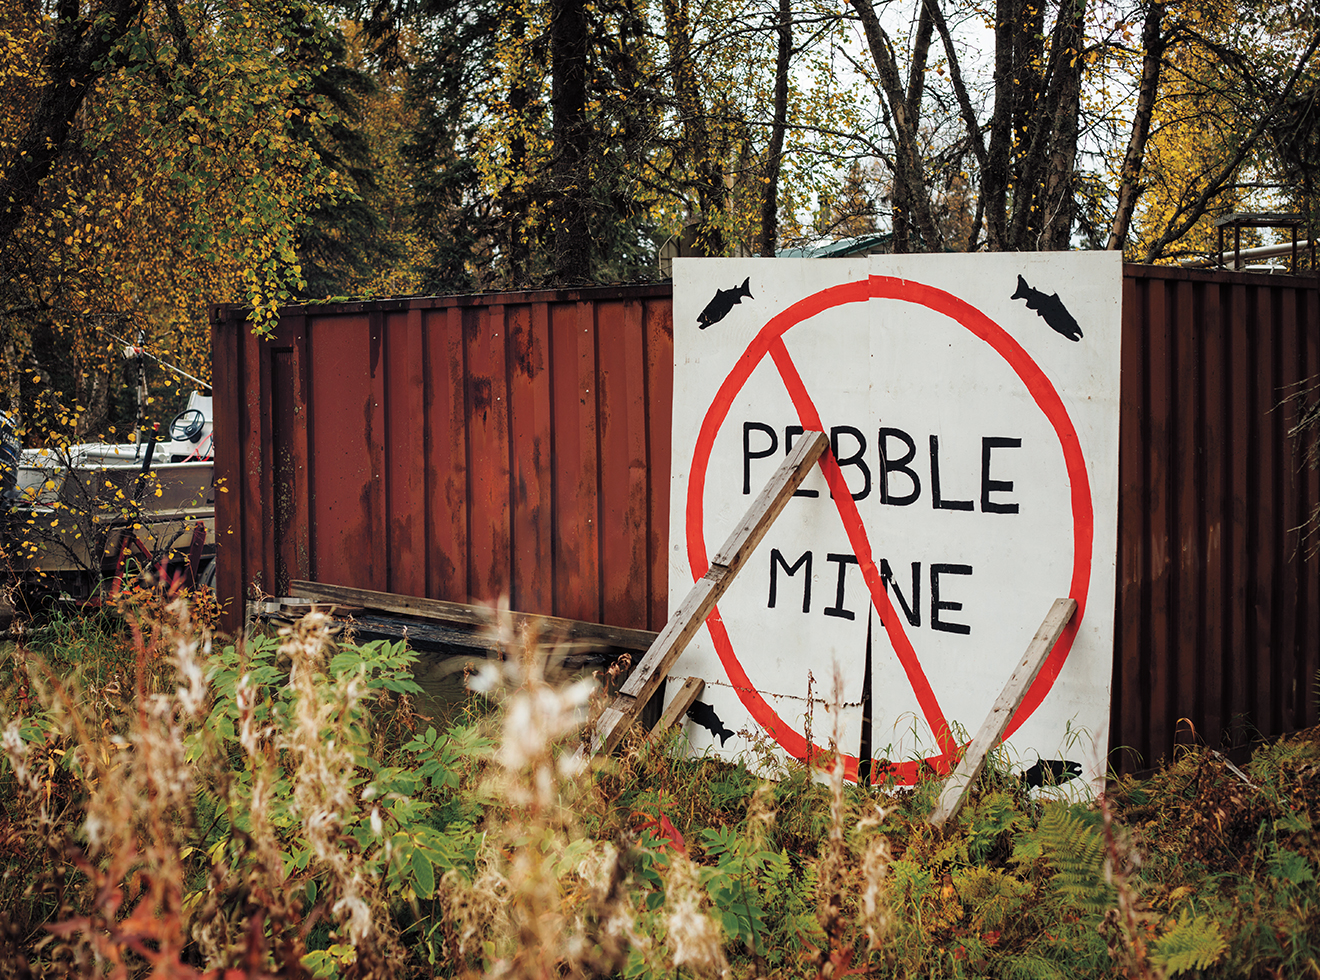 A handmade anti-Pebble sign in Bristol Bay.